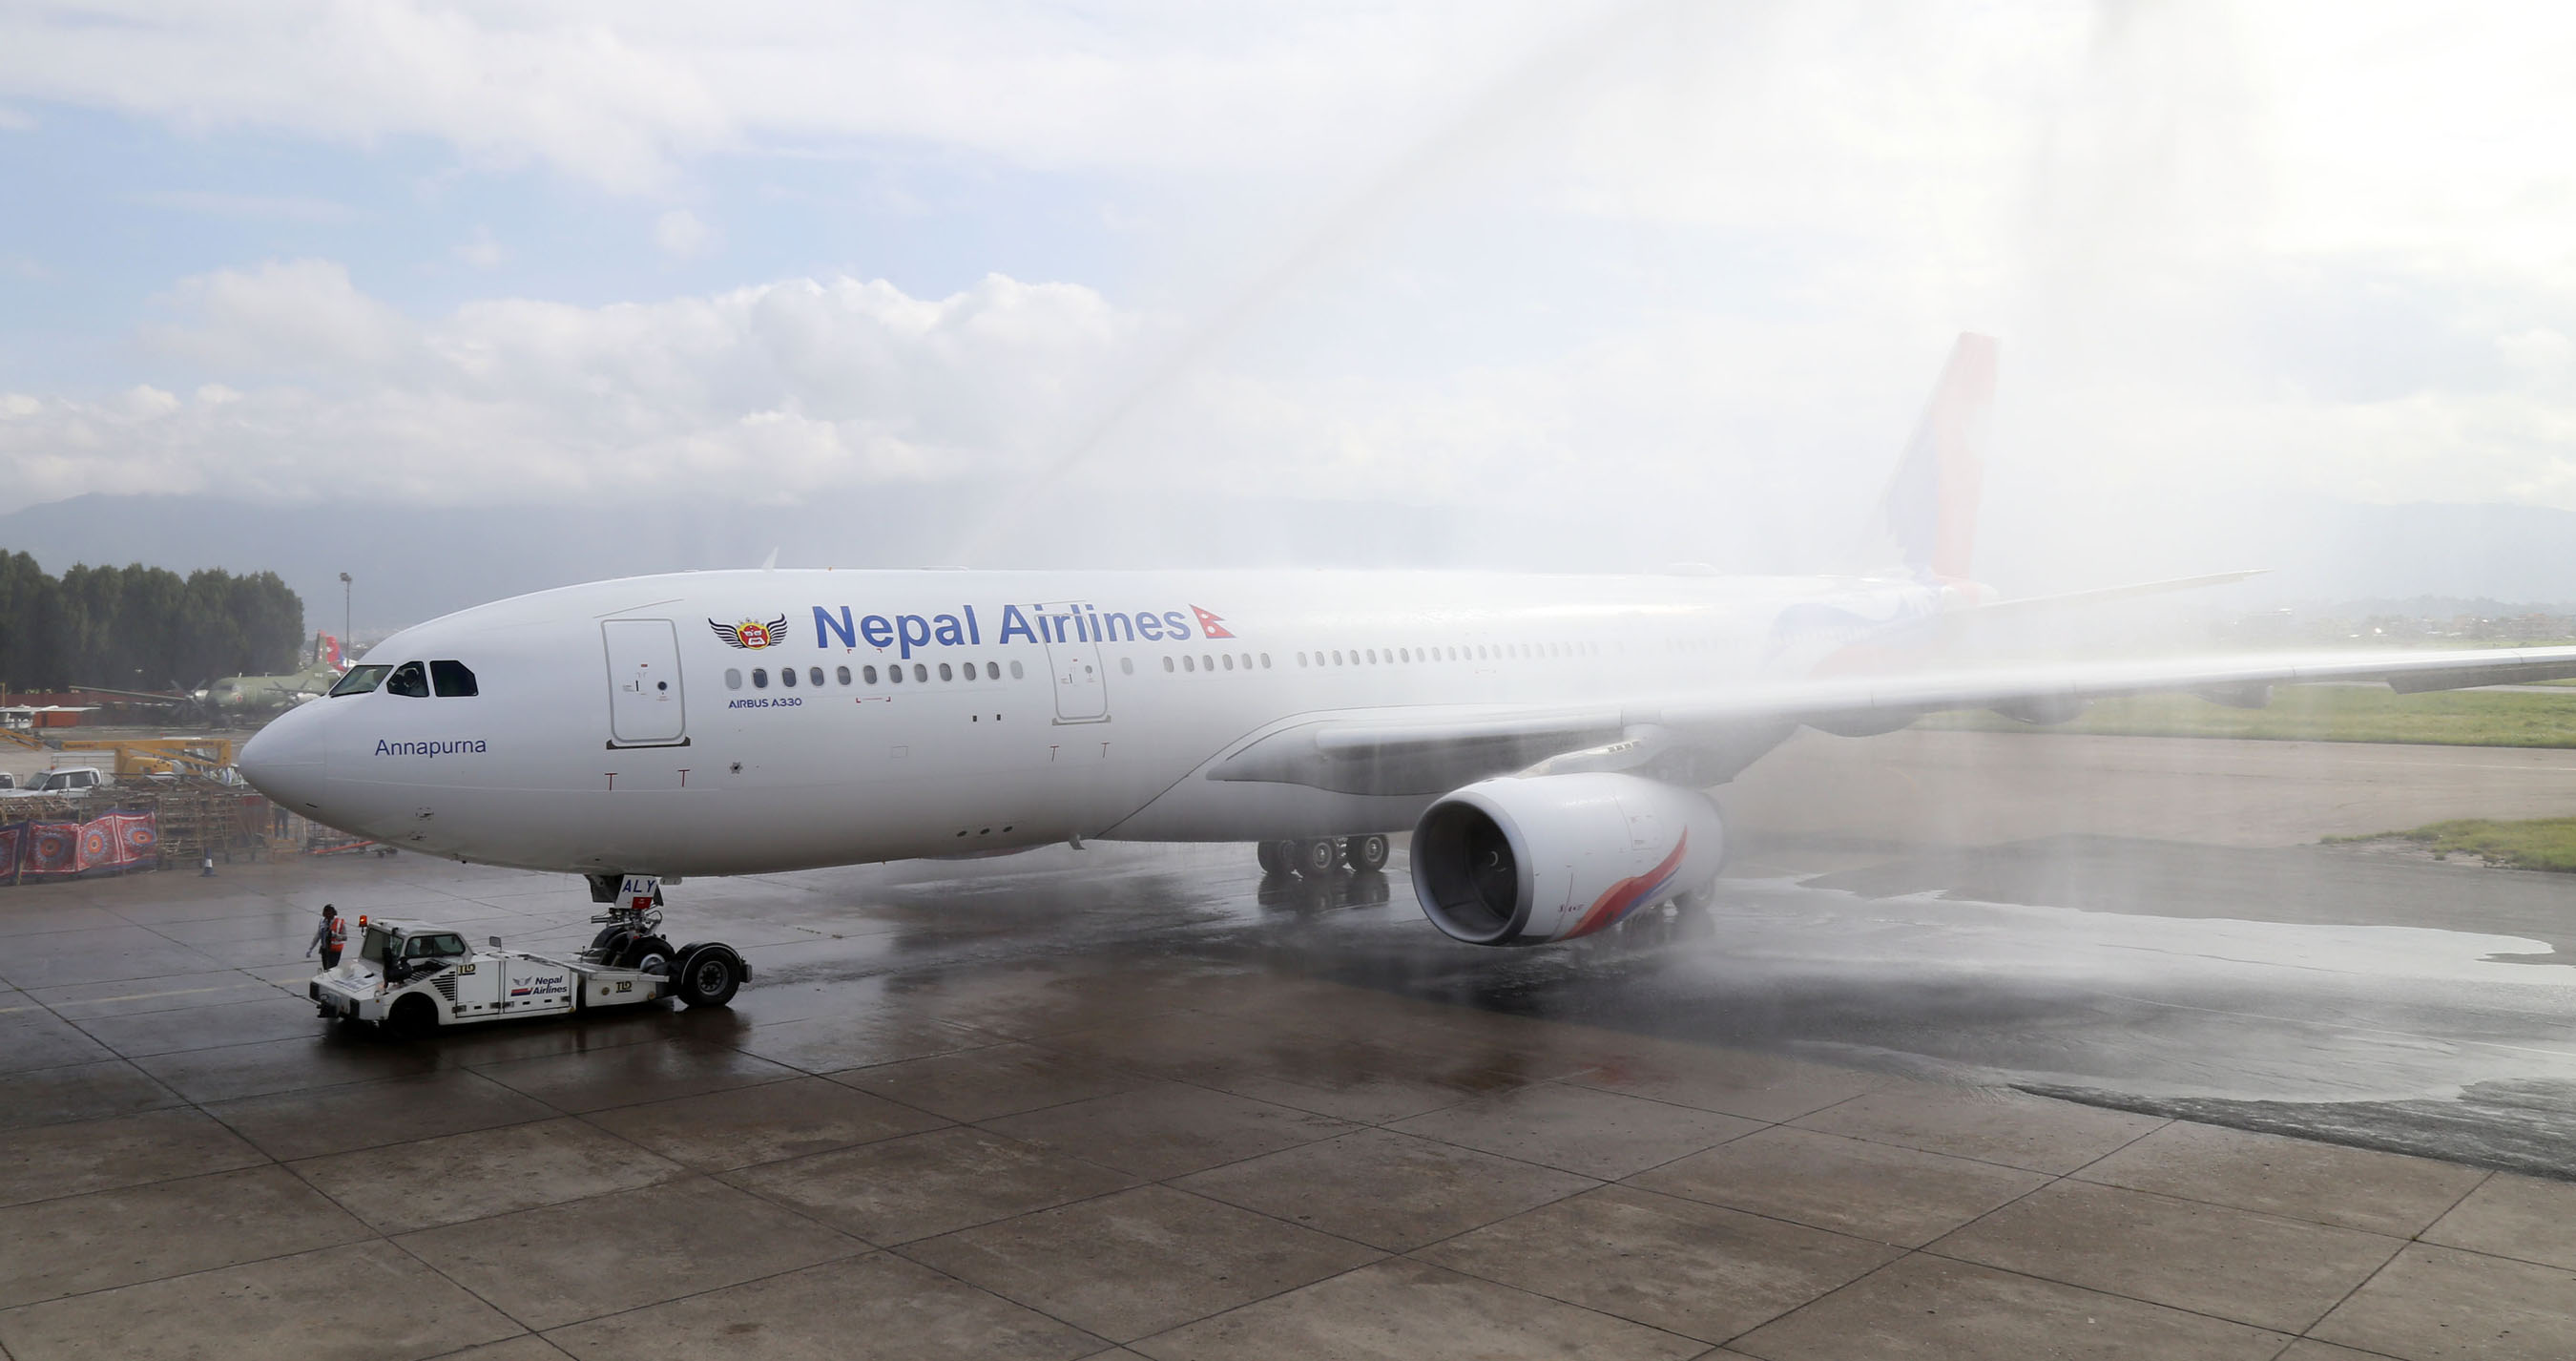 A new first long-range Airbus A330-200 aircraft of Nepal Airlines Corporation is welcomed by a traditional water cannon salute at Tribhuvan International Airport in Kathmandu, on Thursday, June 28, 2018. Rolls-Royce Trent 700 engines power the new aircraft. Photo: Skanda Gautam/THT